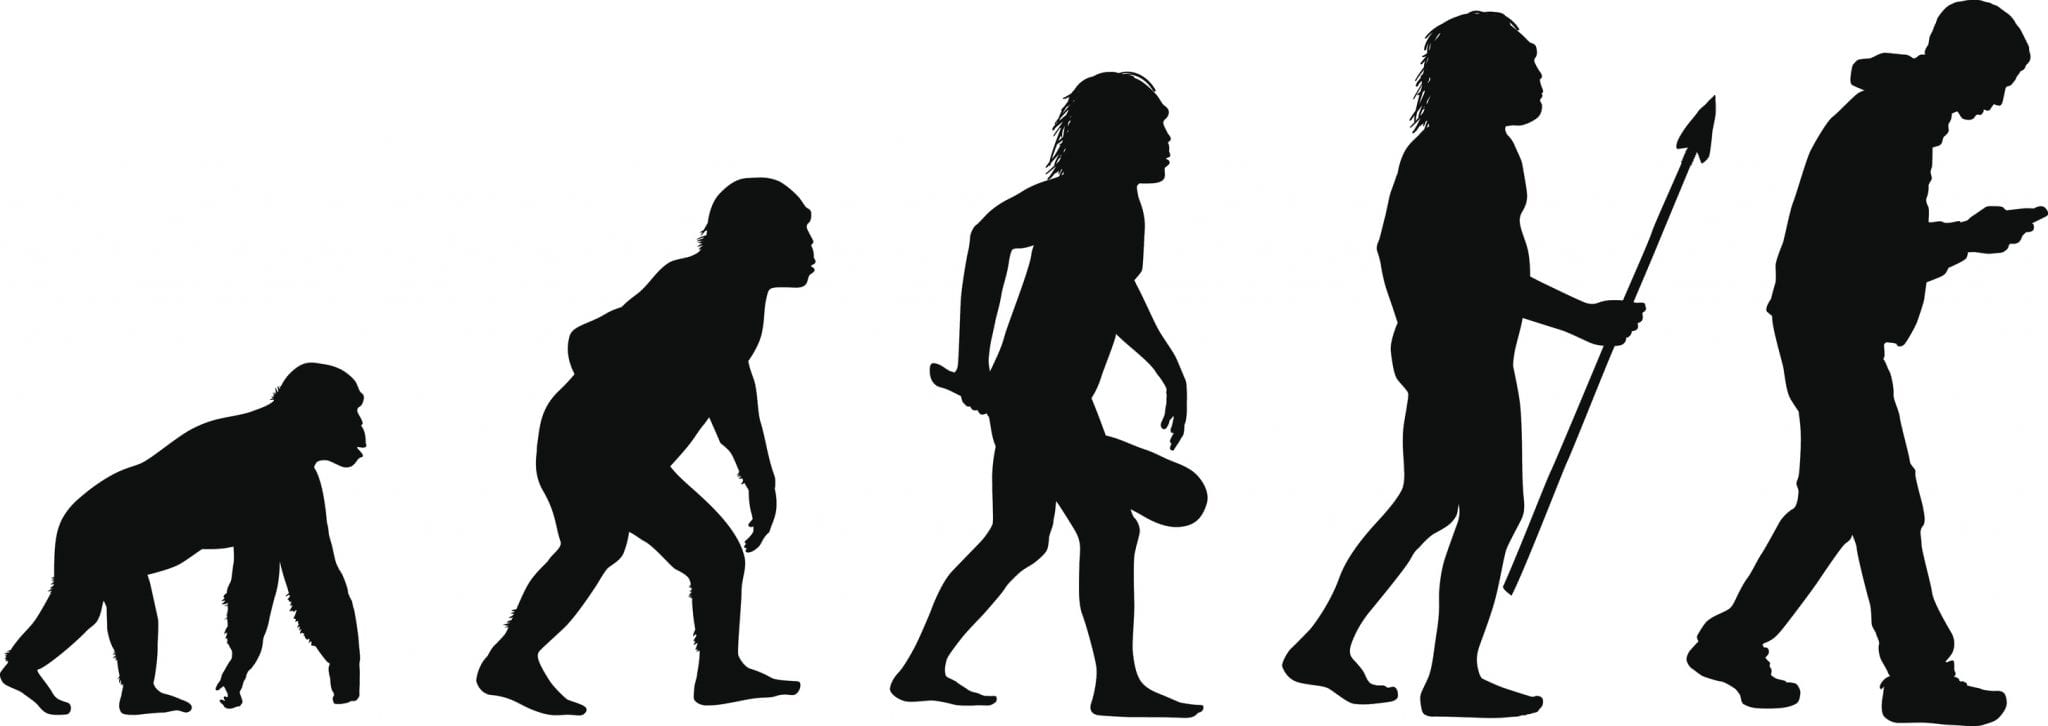 Evolution of Posture